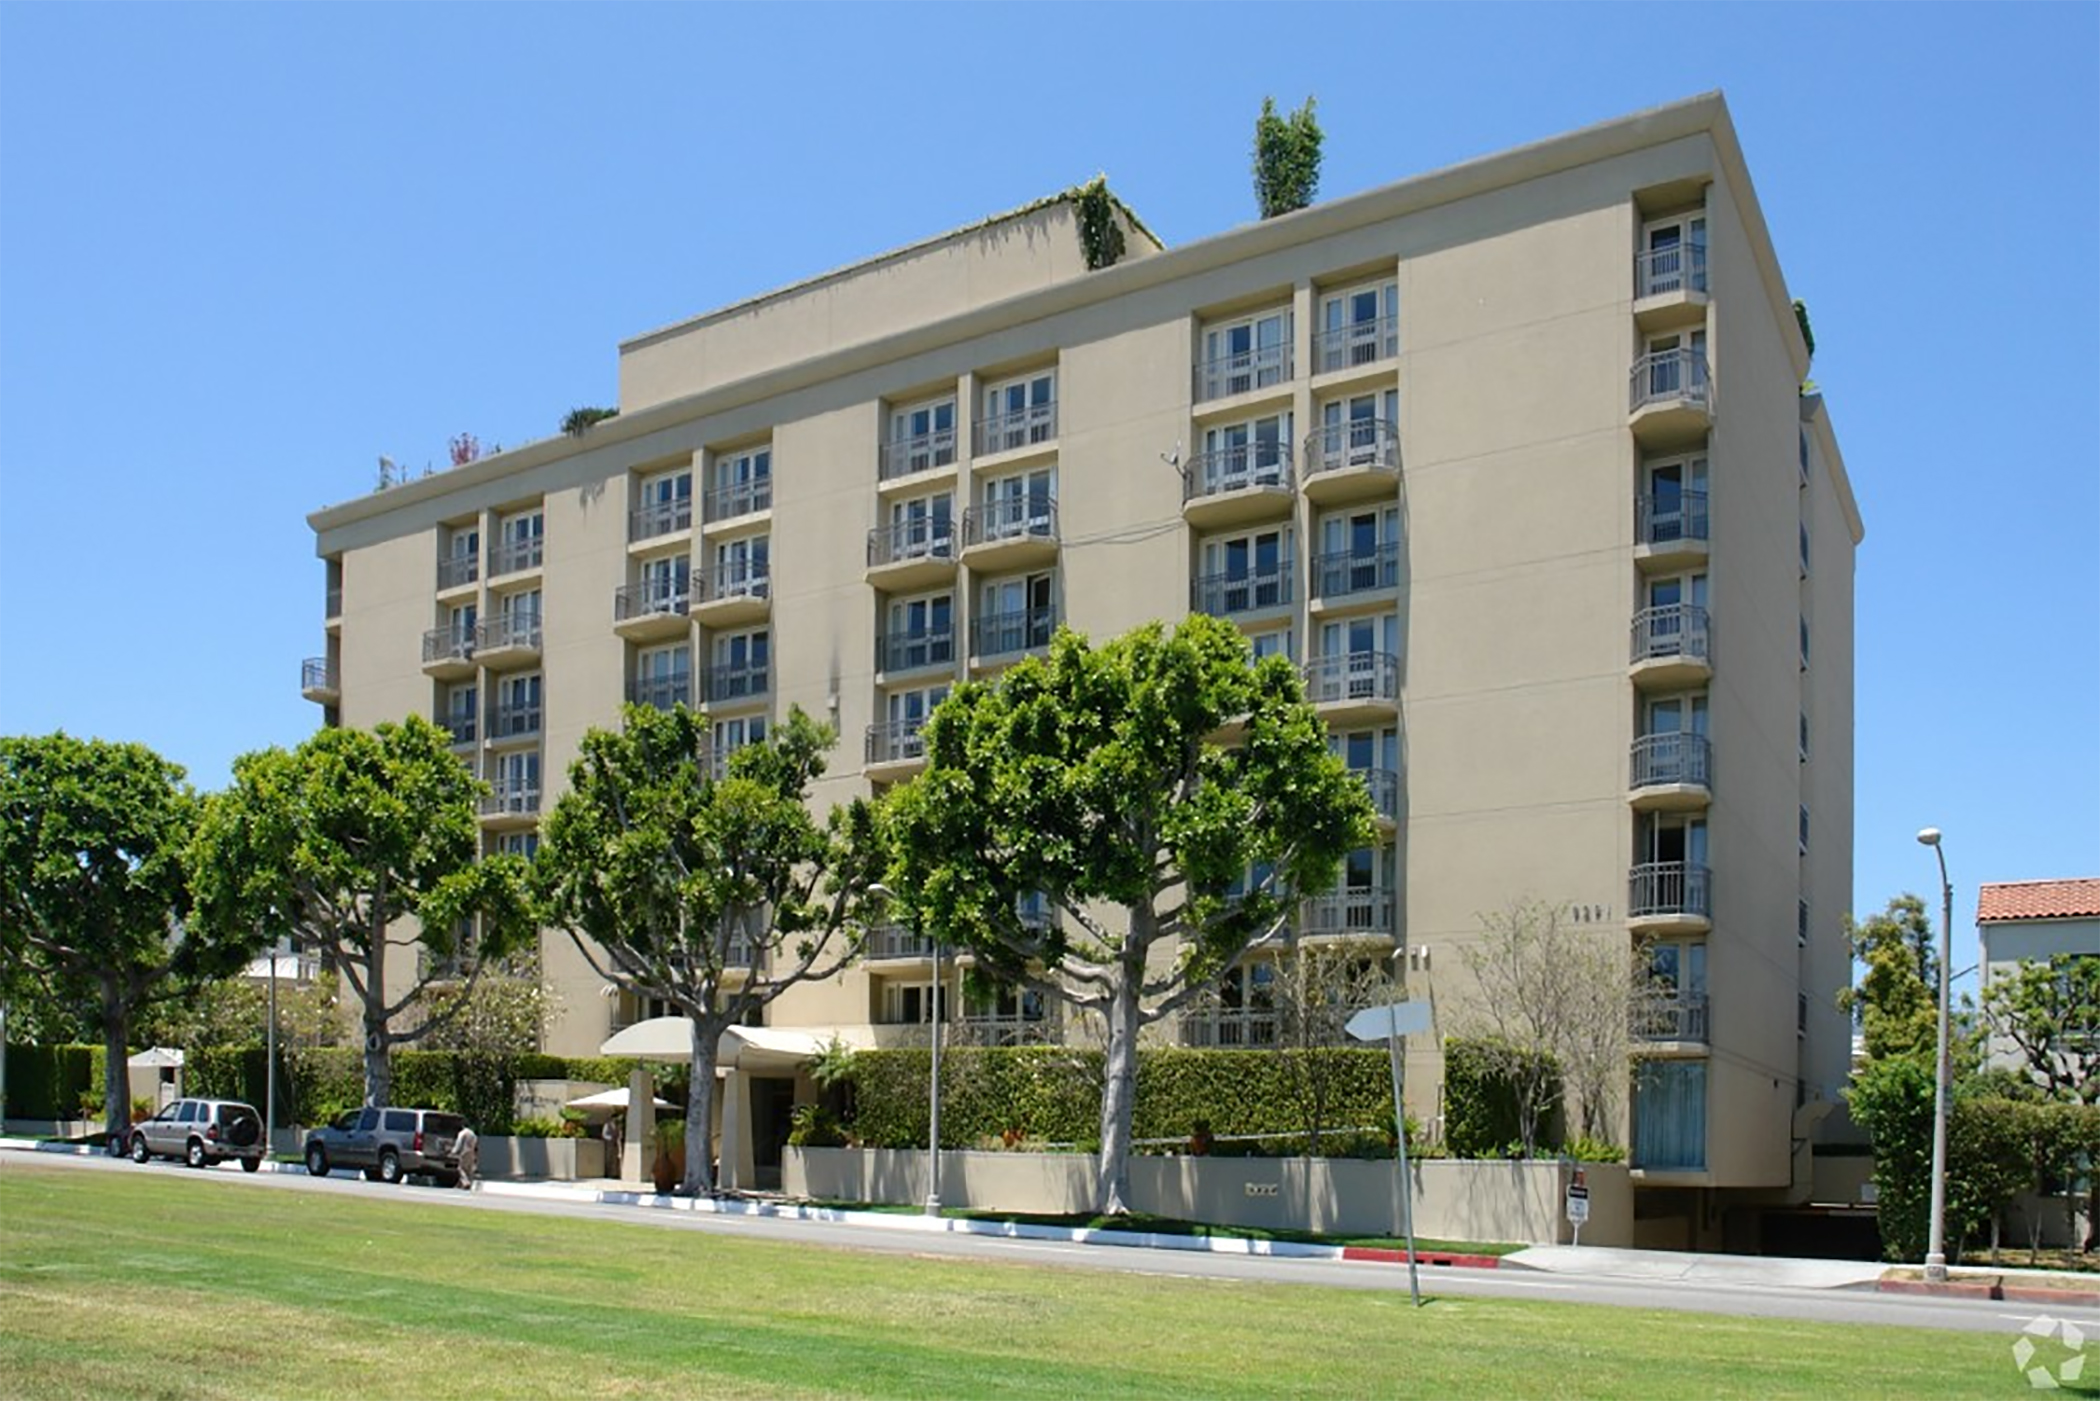 The luxury Viceroy L'Ermitage Beverly Hills hotel in California, known for decades as a celebrity hangout, is being auctioned off in August. (CoStar)